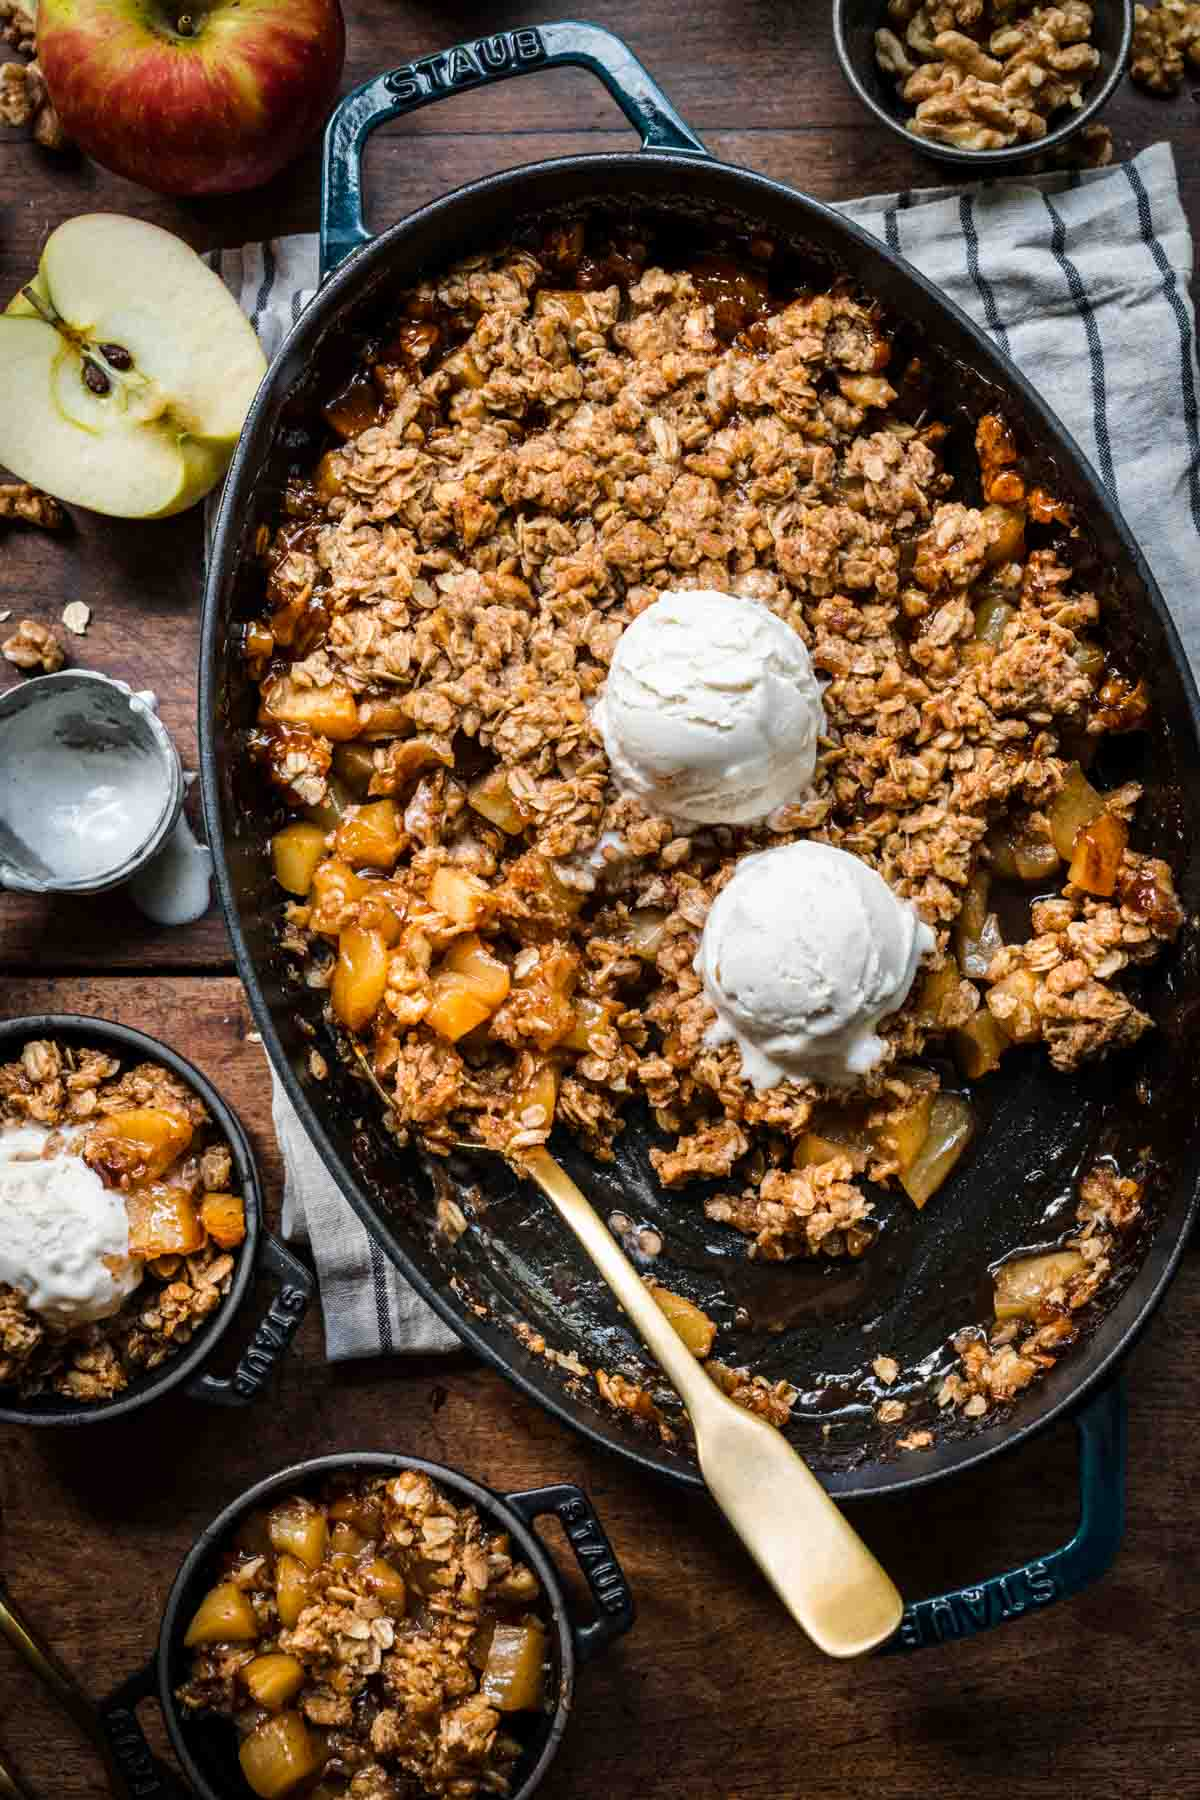 overhead view of gluten free apple crisp in an oval cast iron skillet with vanilla ice cream on top and serving spoon.